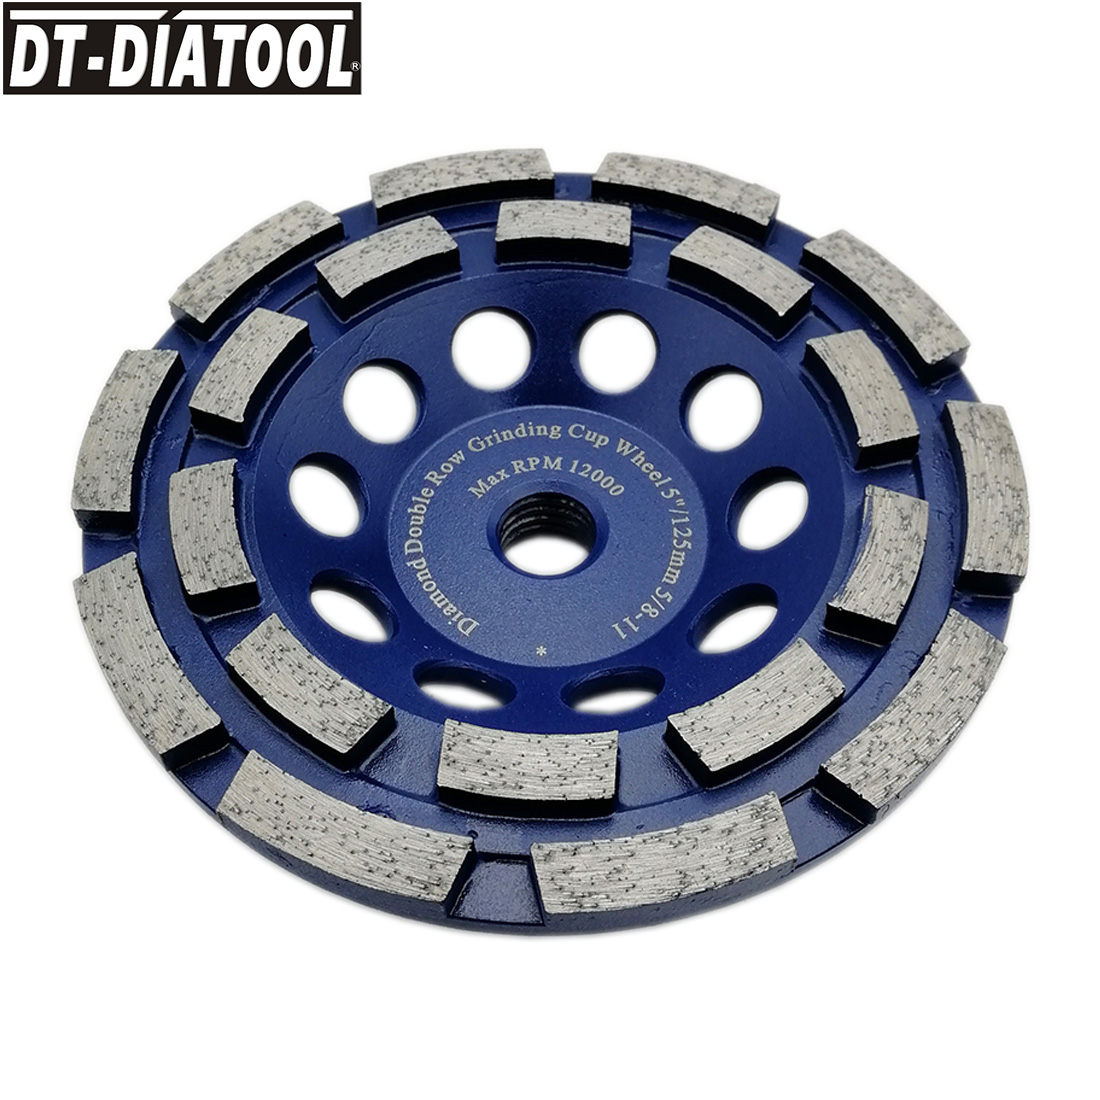 DT-DIATOOL 1piece 5inch/125mm Double Row Diamond Grinding Cup Wheel 5/8-11 thread for Concrete Brick Hard Stone Granite Marble dt diatool 2pcs dia 7 double row diamond grinding cup wheel with 5 8 11 thread for concrete hard stone granite dia 7inch 180mm